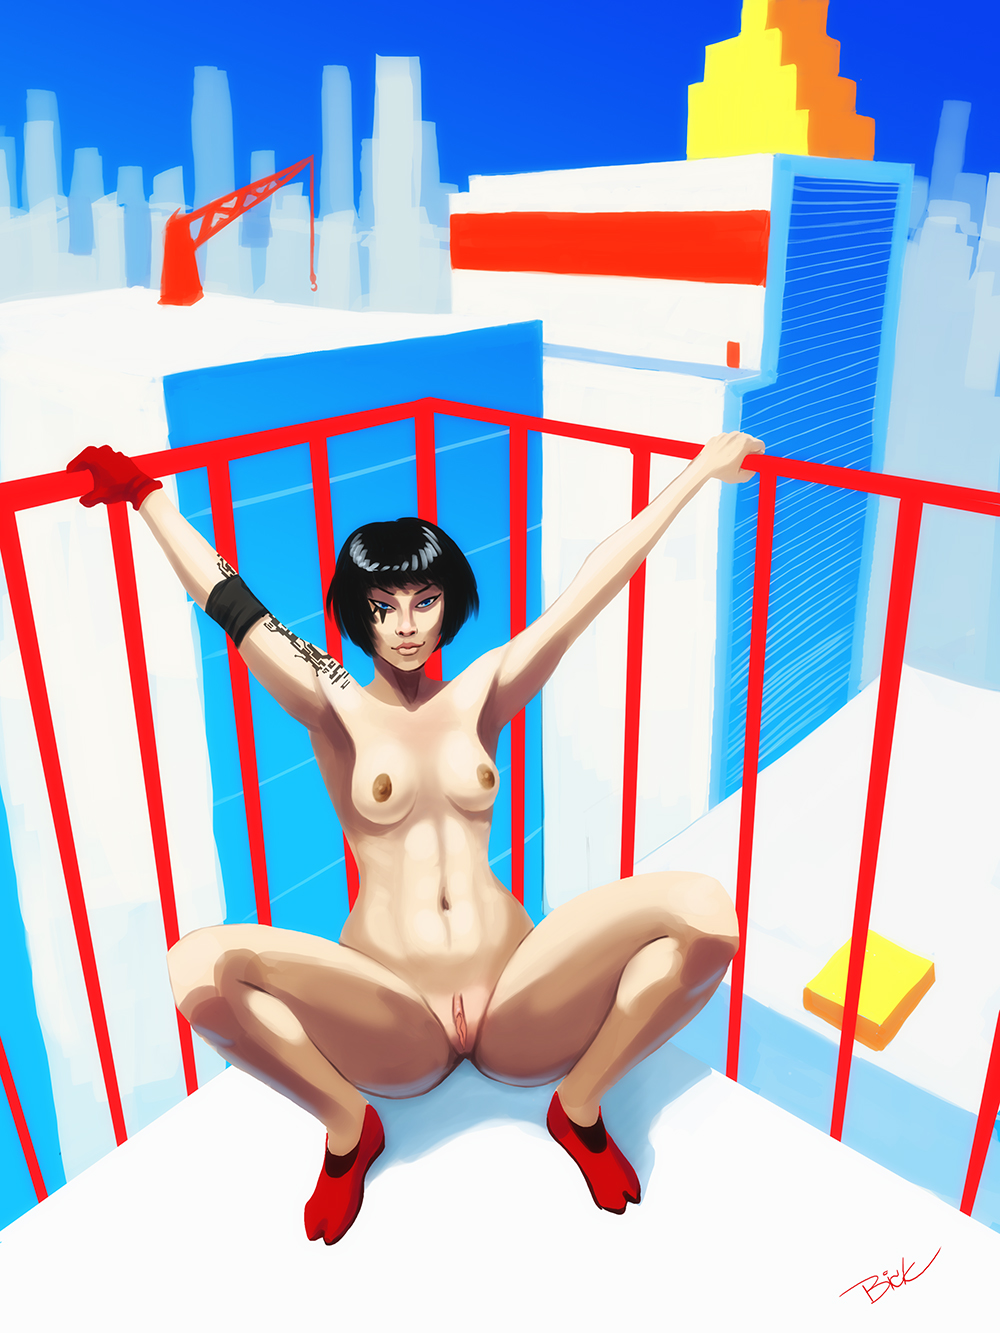 Mirrors edge sex pics adult scene